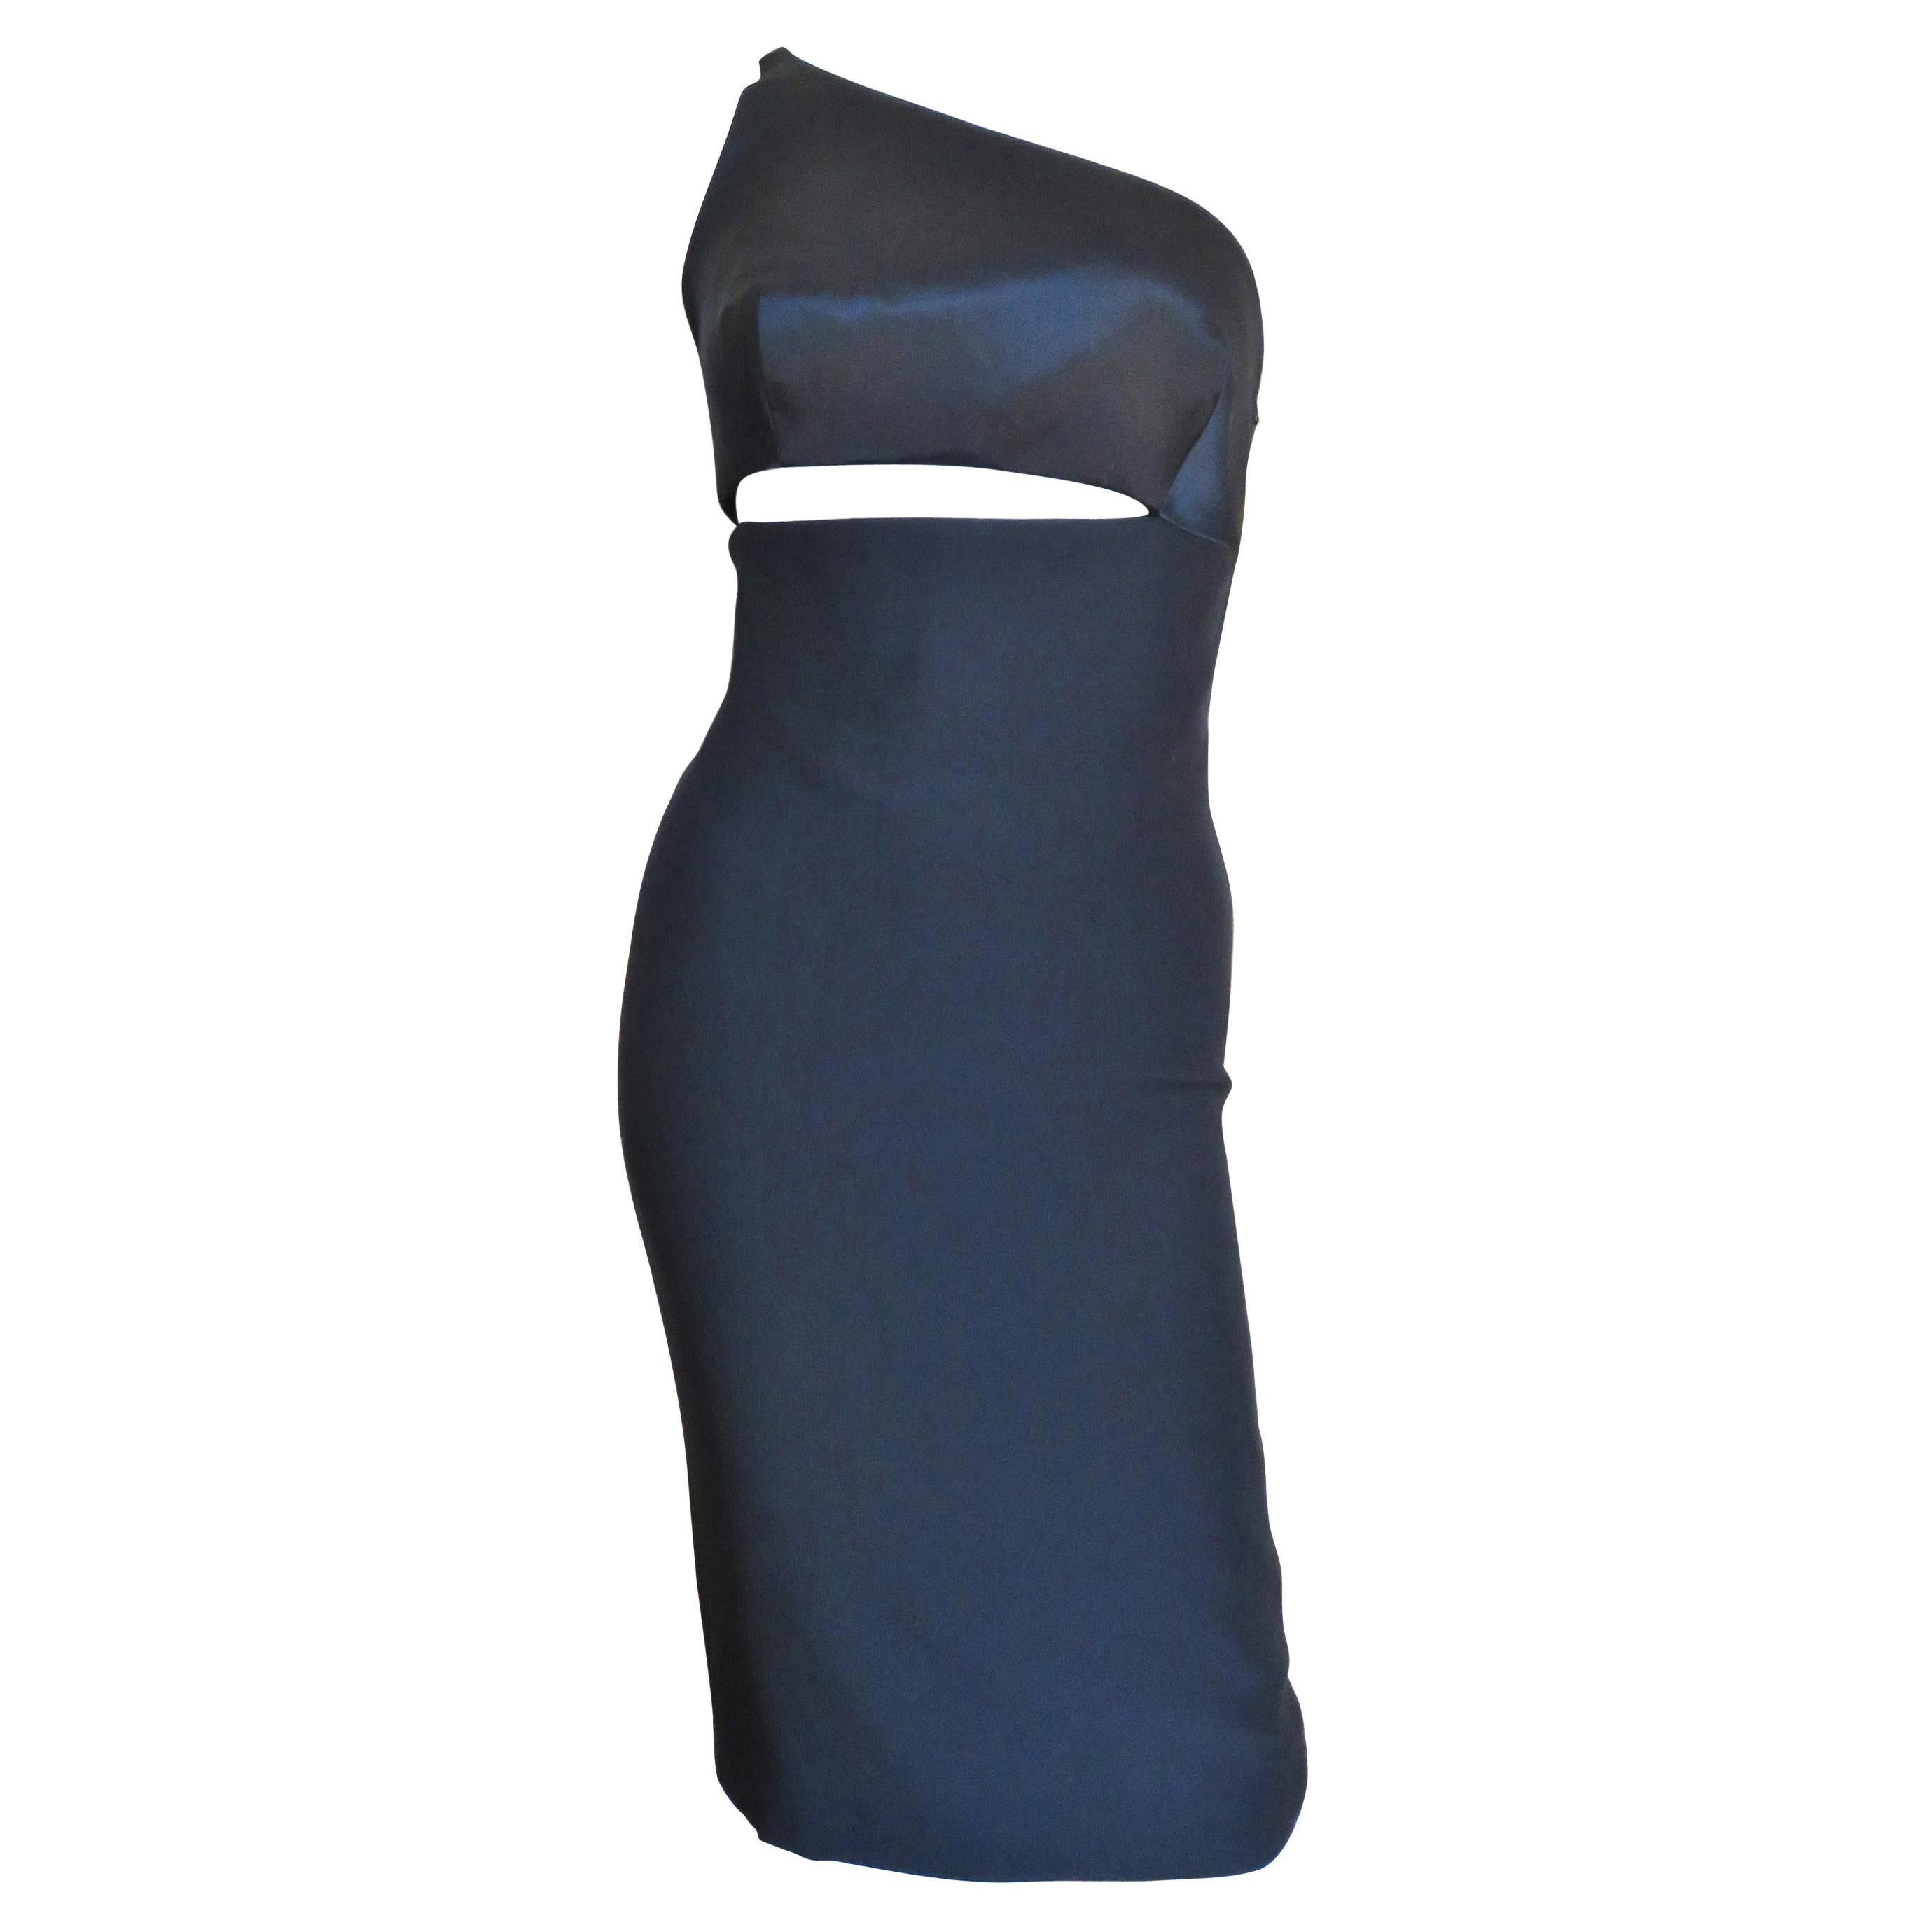 Gianni Versace One Shoulder Dress with Cut out